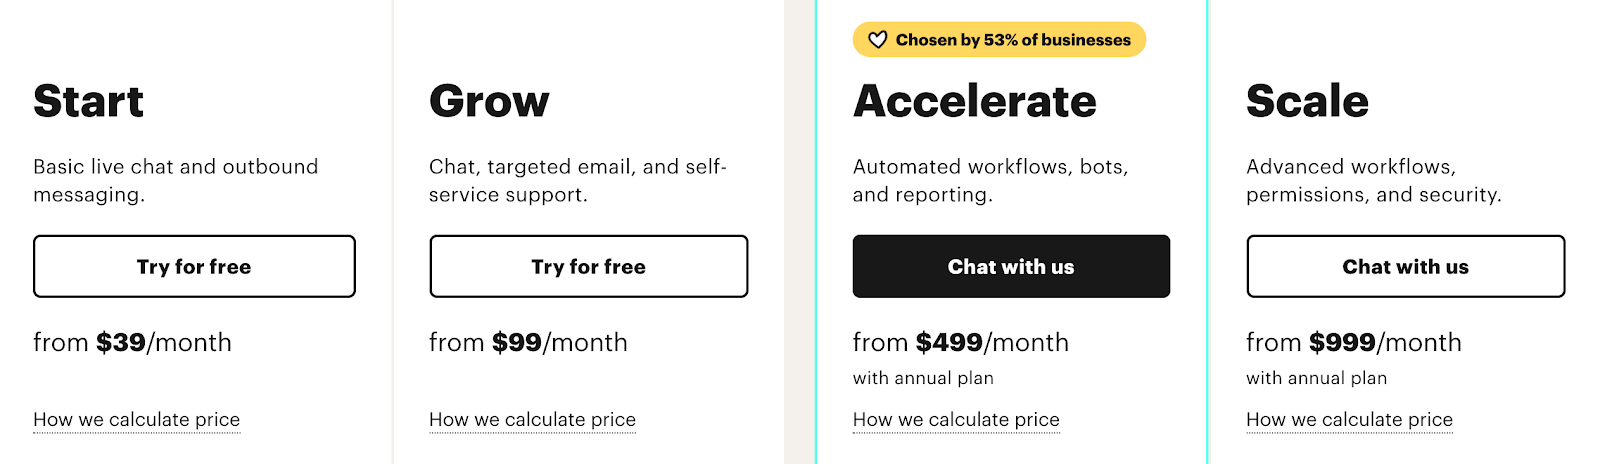 Intercom pricing plans